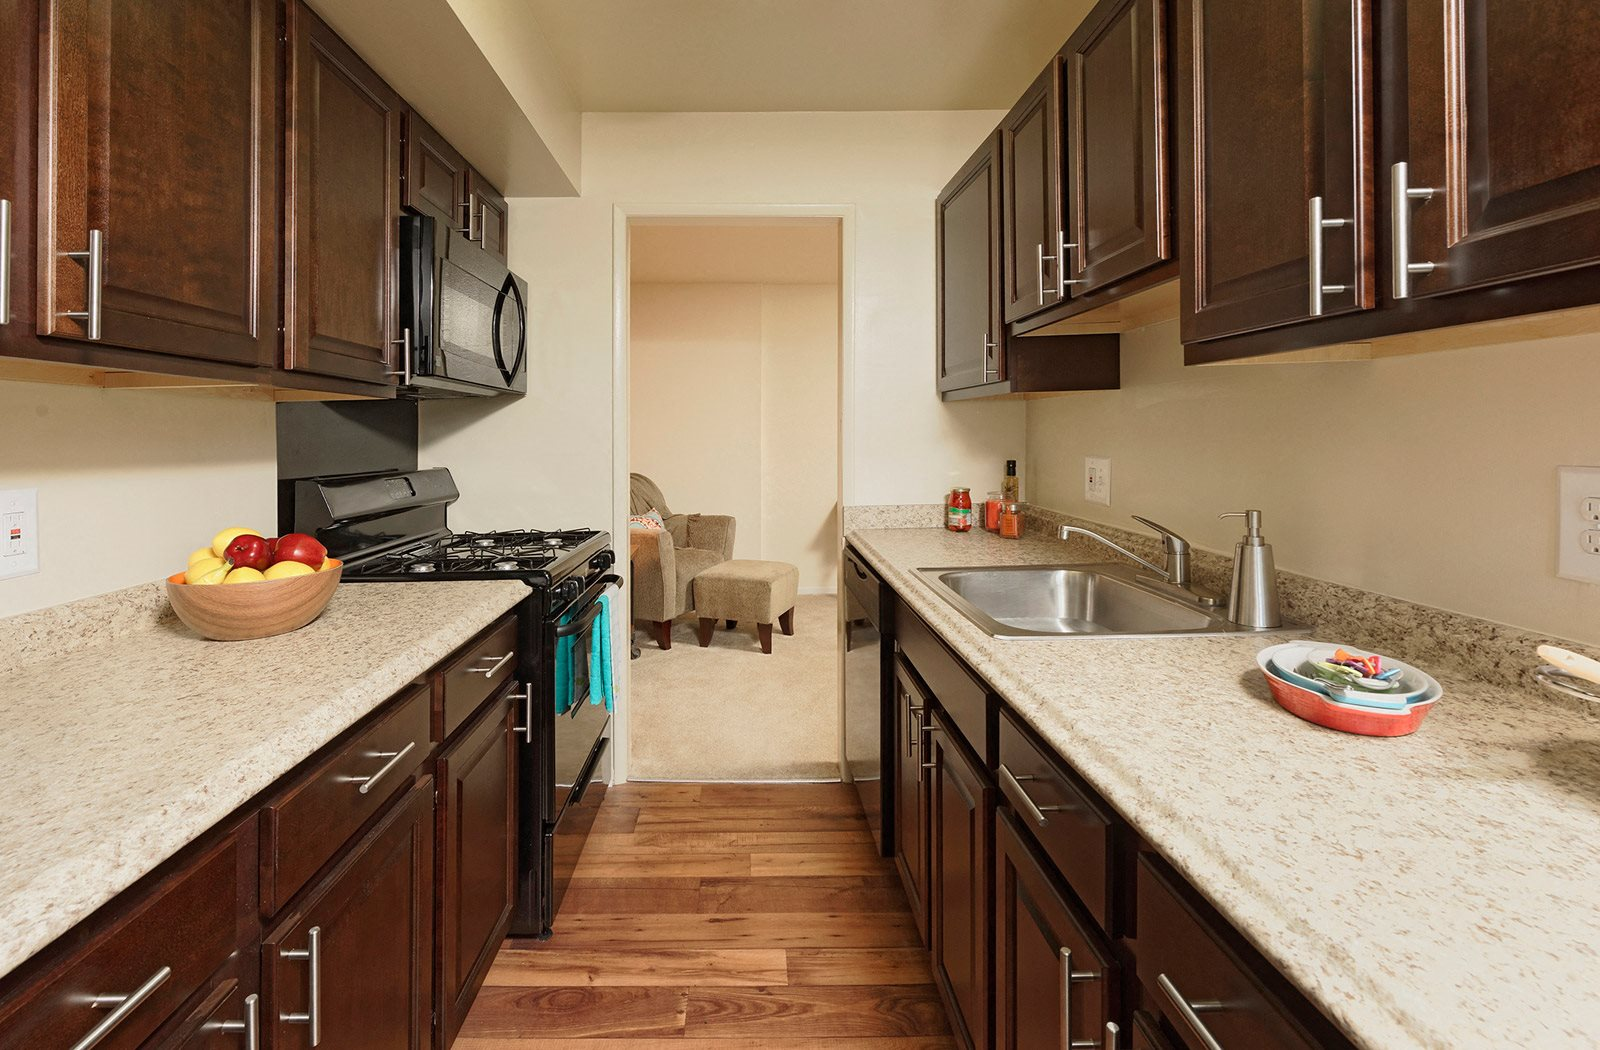 New Countertops and Cabinets at Courthouse Square Apartments, Towson, MD, 21286